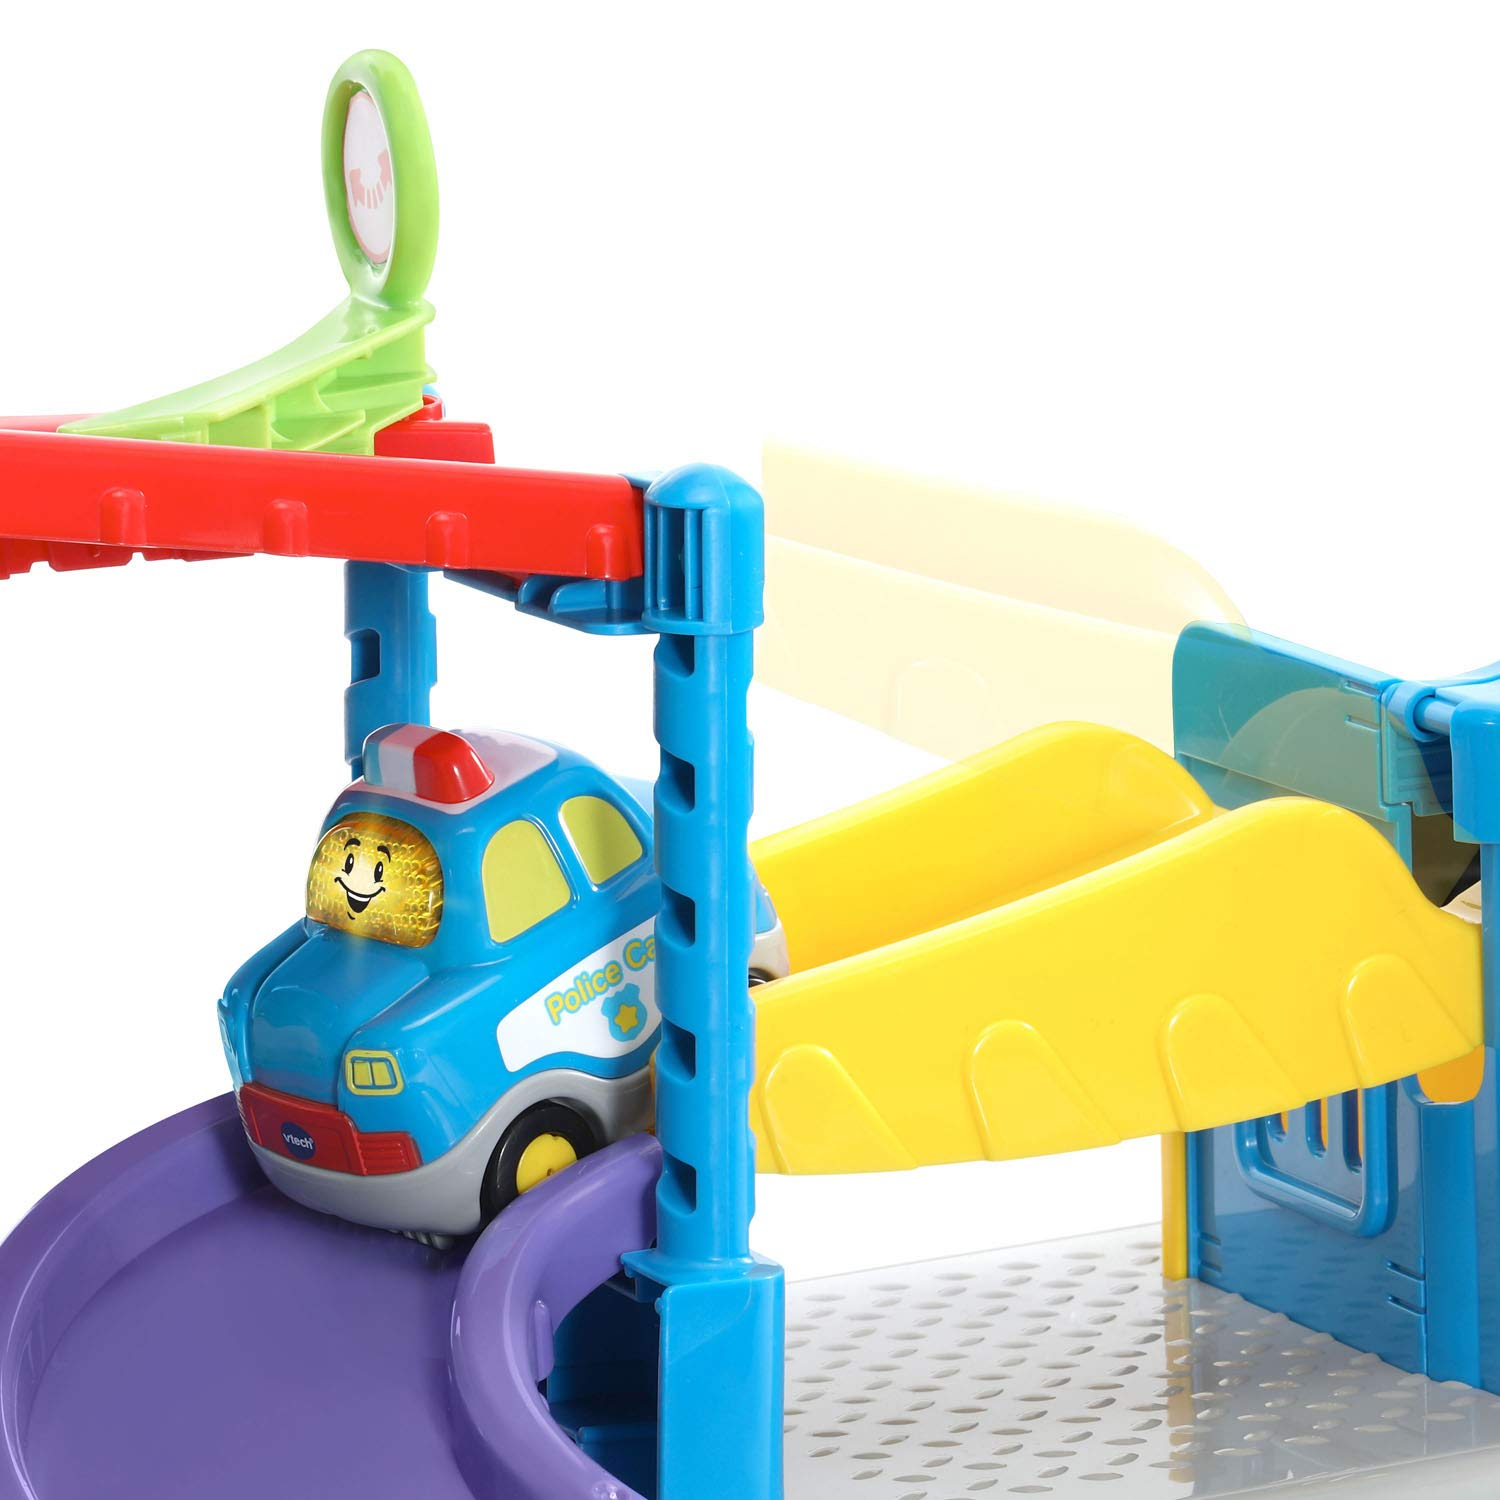 VTech Go! Go! Smart Wheels Launch and Chase Police Tower by VTech (Image #10)